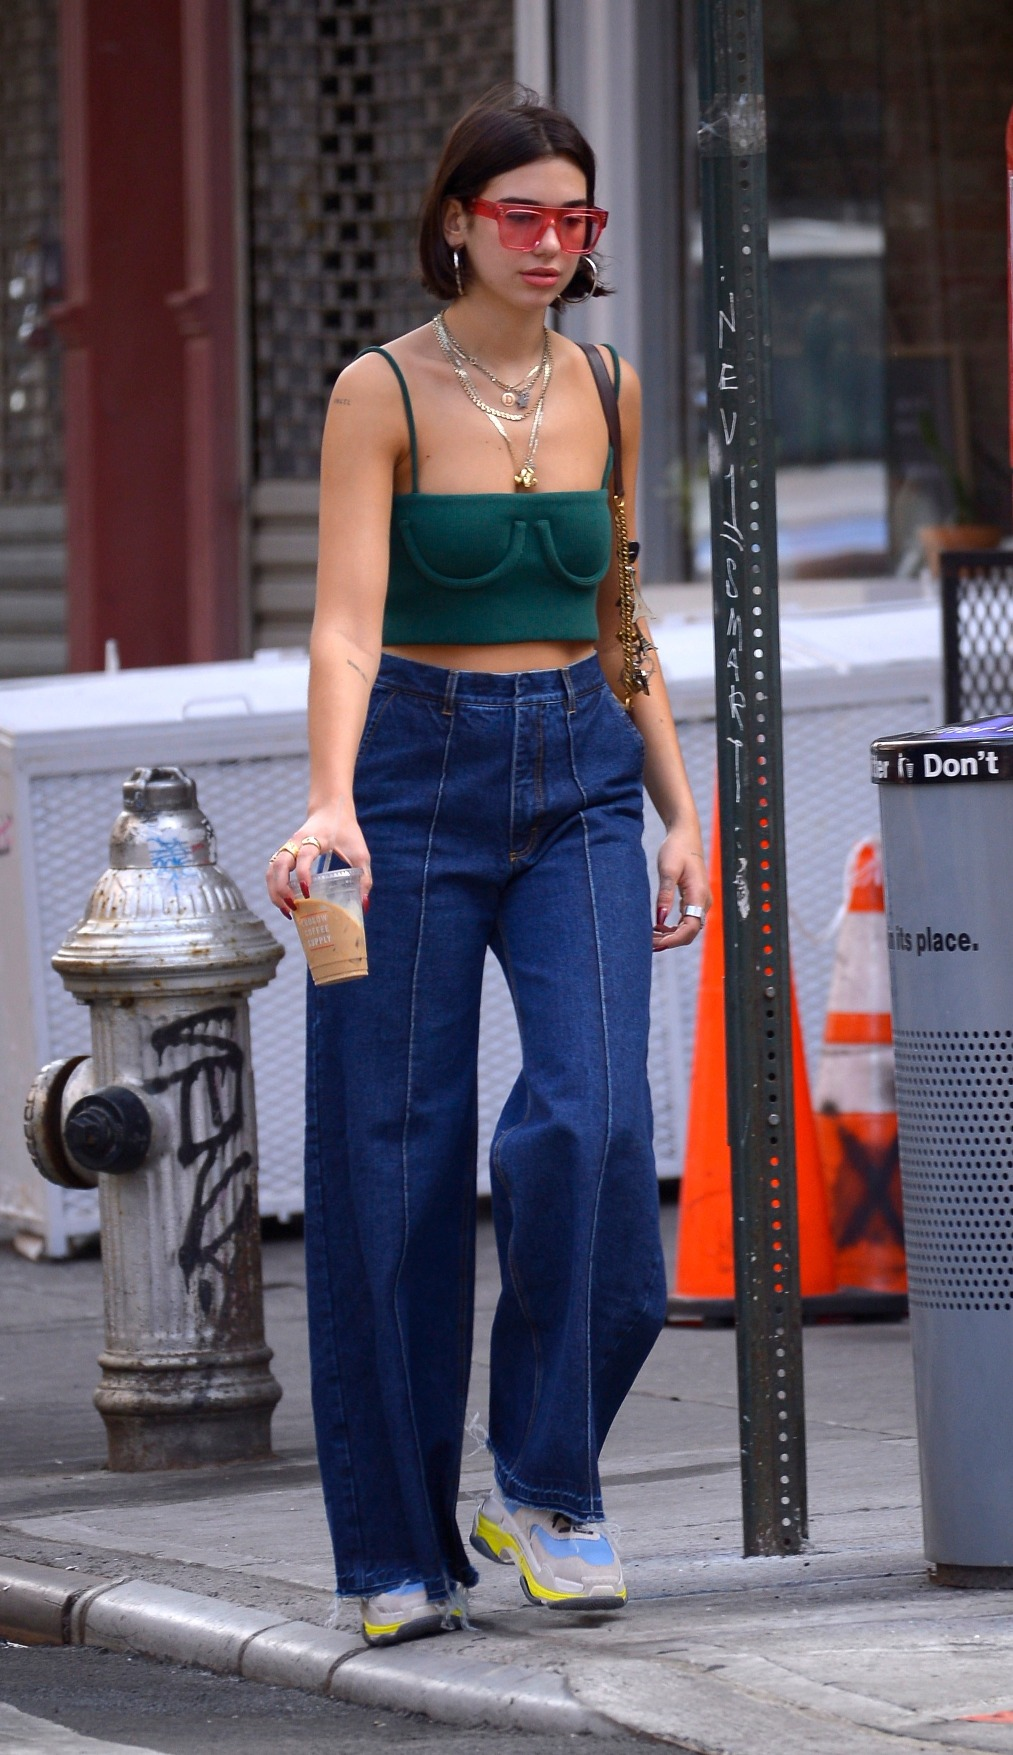 EXCLUSIVE: Dua Lipa wears a cropped green top and denim flare pants with rose-colored sunglasses on a coffee run in SOHO, New York, USA.  Pictured: Dua Lipa Ref: SPL5005234 190618 EXCLUSIVE Picture by: Edward Opi / SplashNews.com  Splash News and Pictures Los Angeles: 310-821-2666 New York: 212-619-2666 London: 0207 644 7656 Milan: +39 02 4399 8577 Sydney: +61 02 9240 7700 photodesk@splashnews.com  World Rights, No Poland Rights, No Portugal Rights